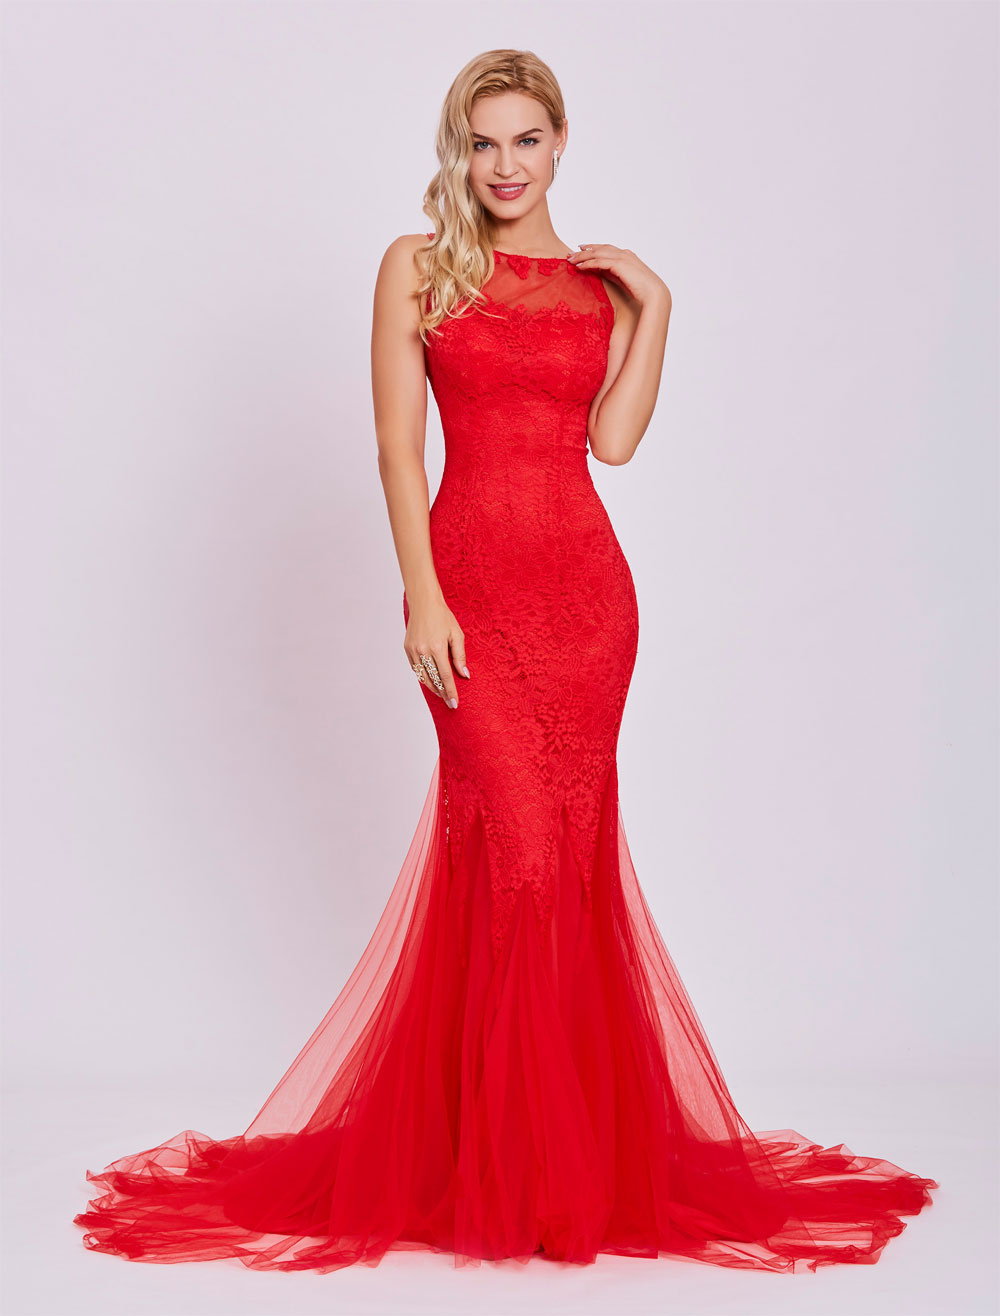 Buy Red Prom Dresses 2018 Long Backless Sexy Evening Dress Lace Mermaid Tulle Formal Gown With Train for $83.59 in Milanoo store